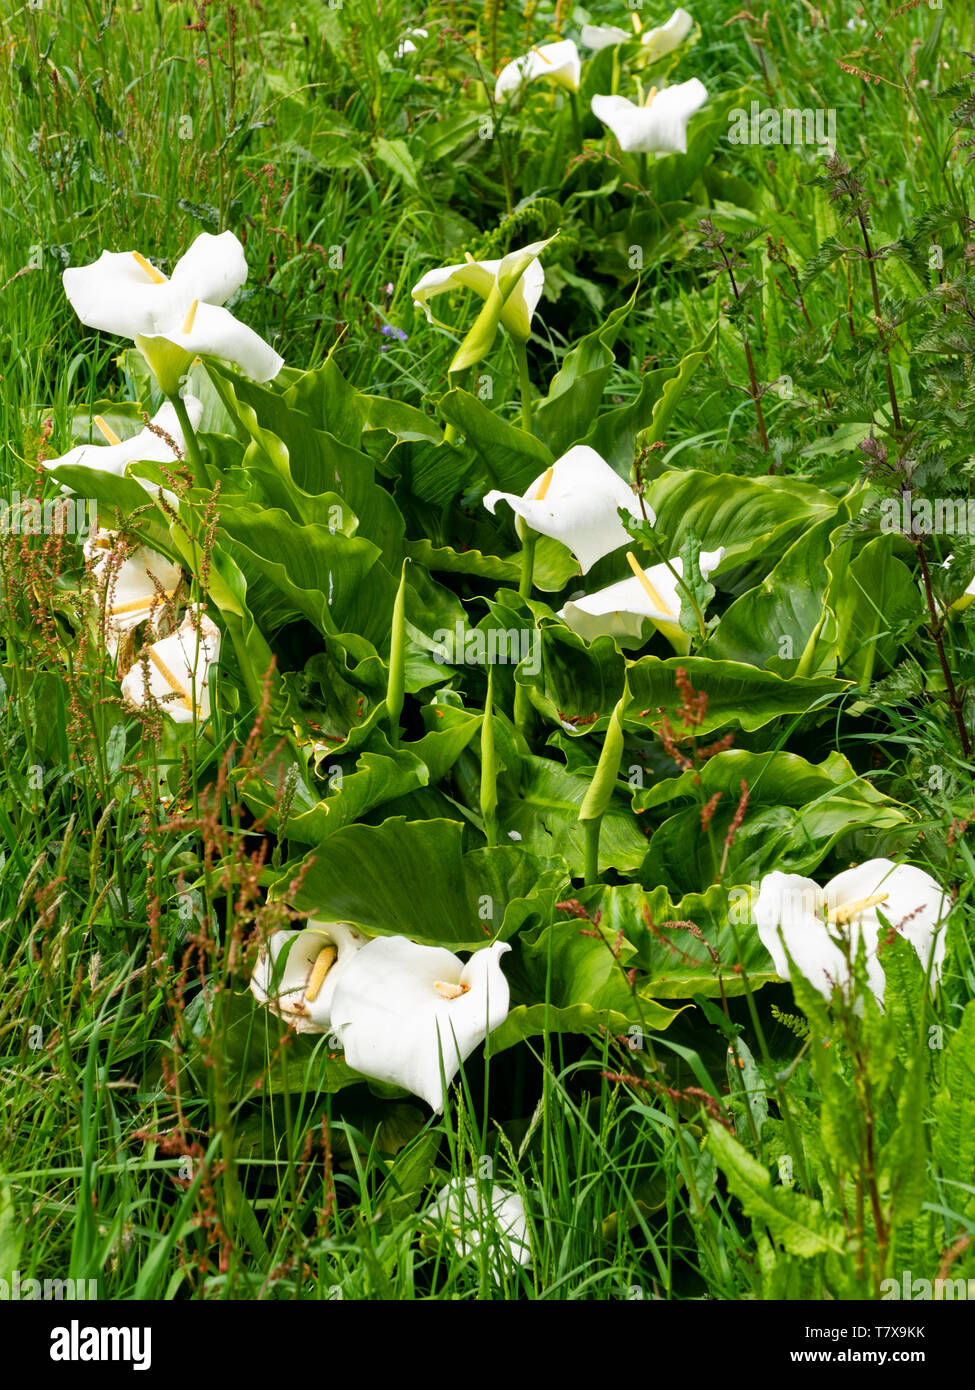 White spathes and yellow spadices of the South African Calla lily, Zantedeschia aethiopica, naturalised in a UK ditch Stock Photo